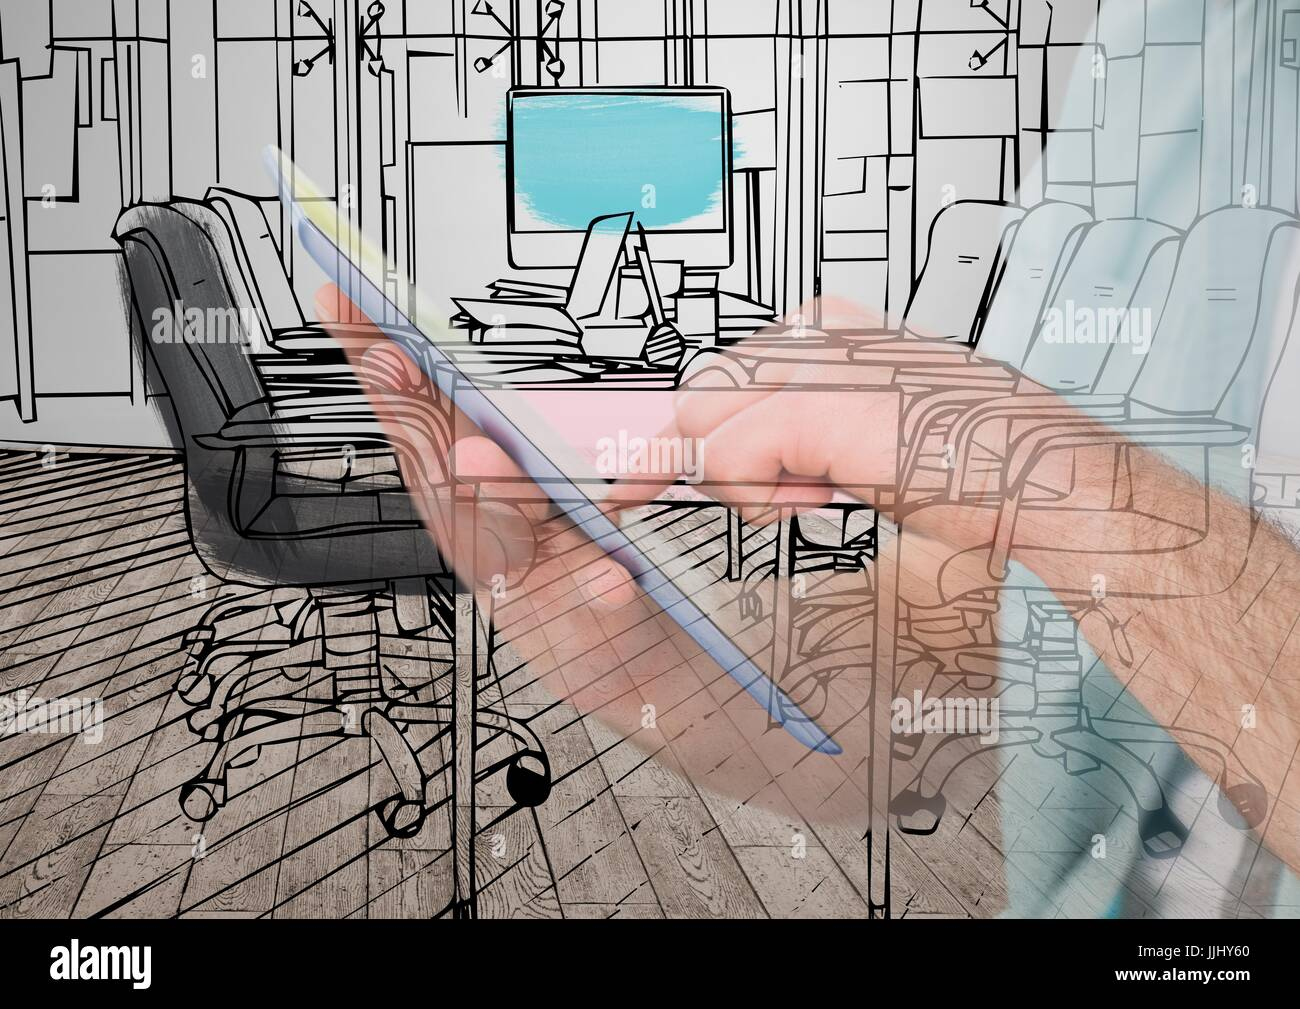 Drawing Lines With Tablet : Hands with tablet drawing on it the new office lines and overlap